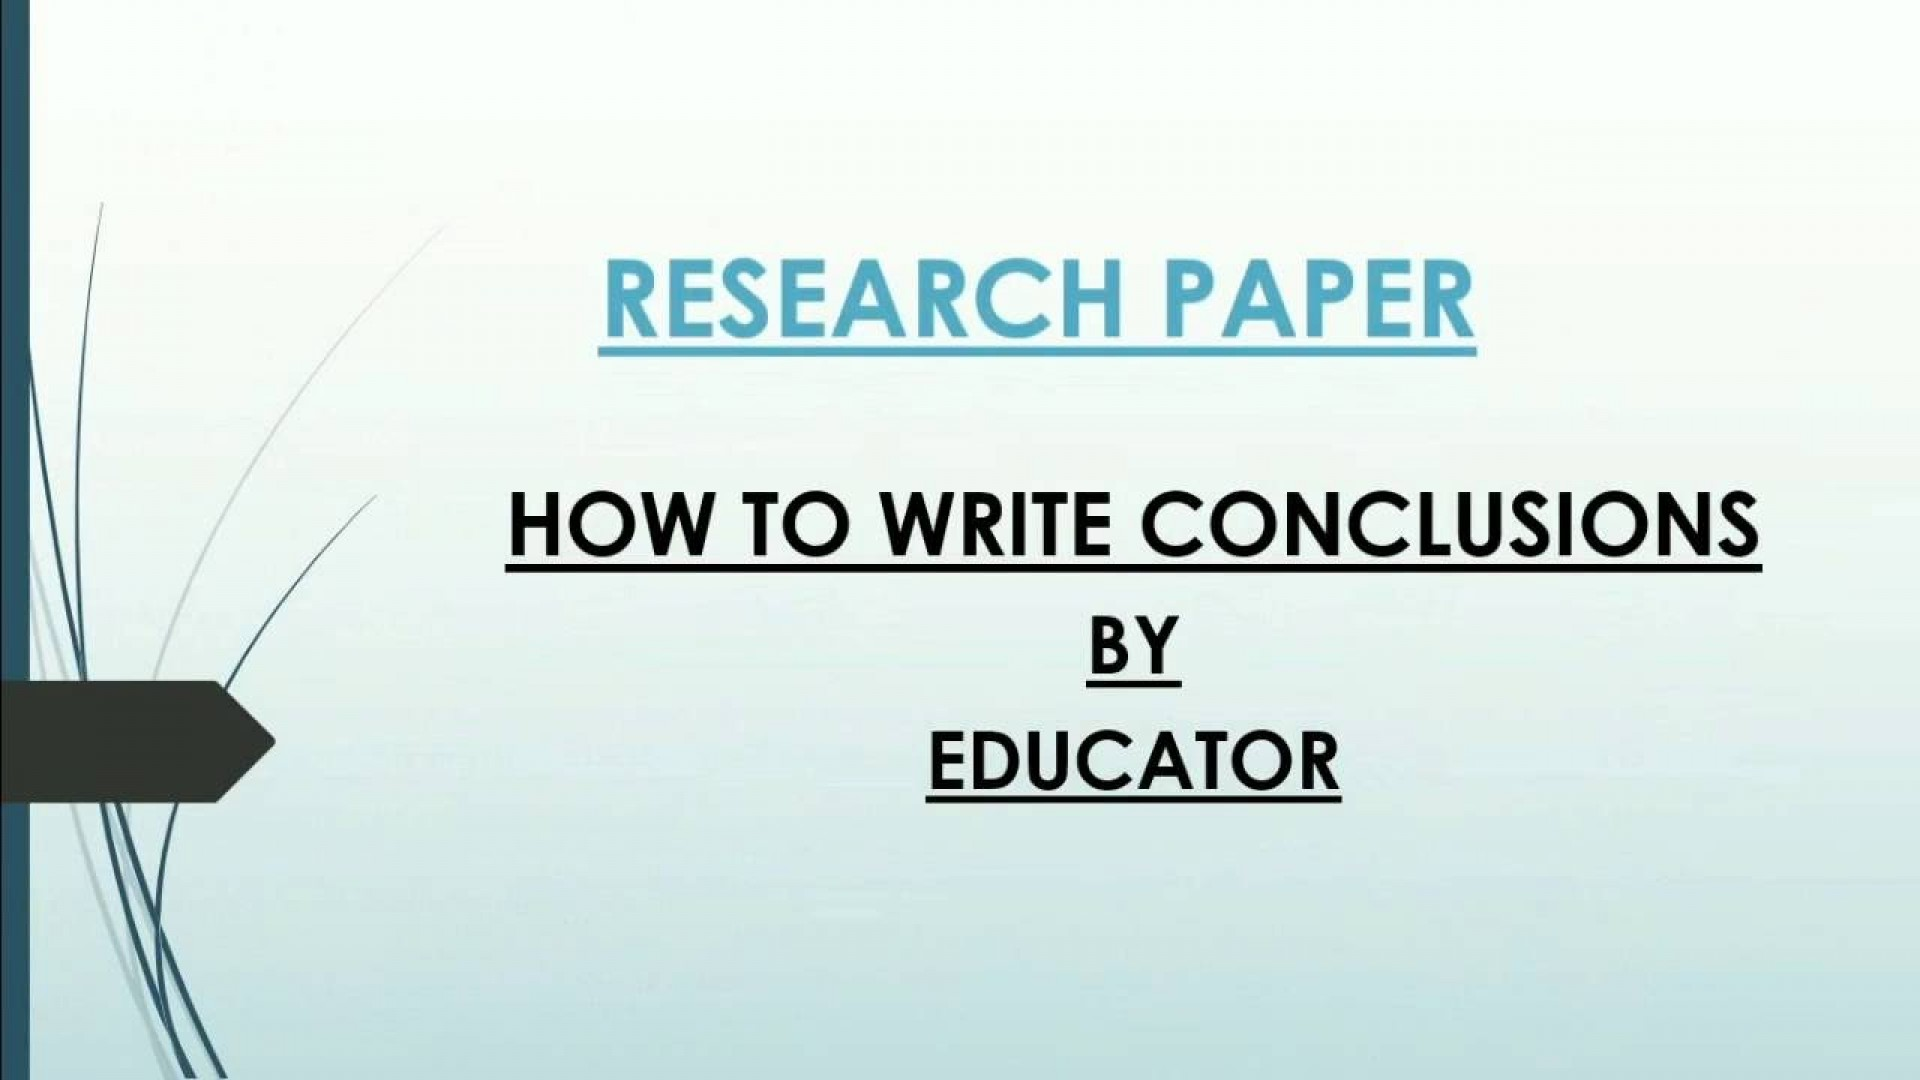 017 Research Paper Conclusion Help Amazing 1920